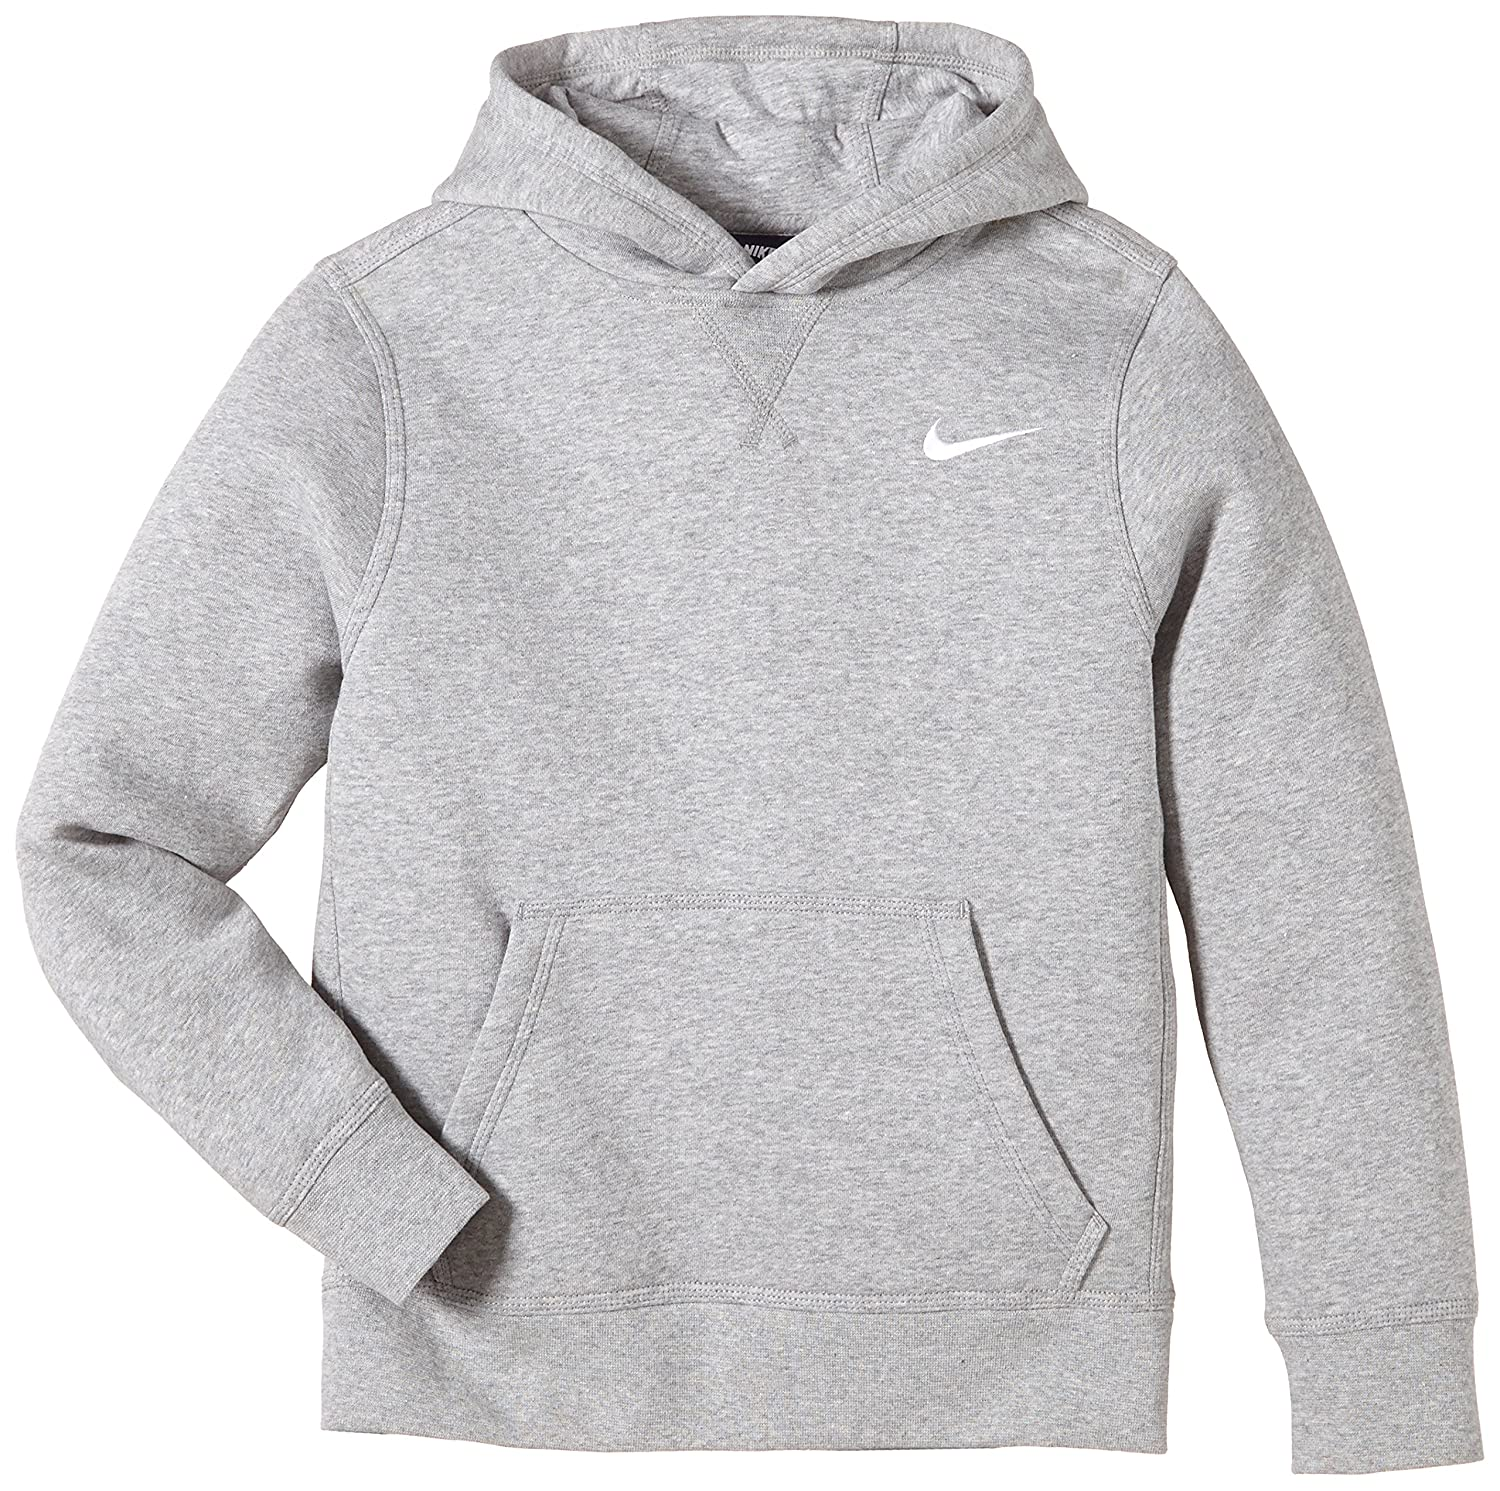 nike sweat capuche tech fleece cape gris femme nike shox concevoir votre chaussure. Black Bedroom Furniture Sets. Home Design Ideas